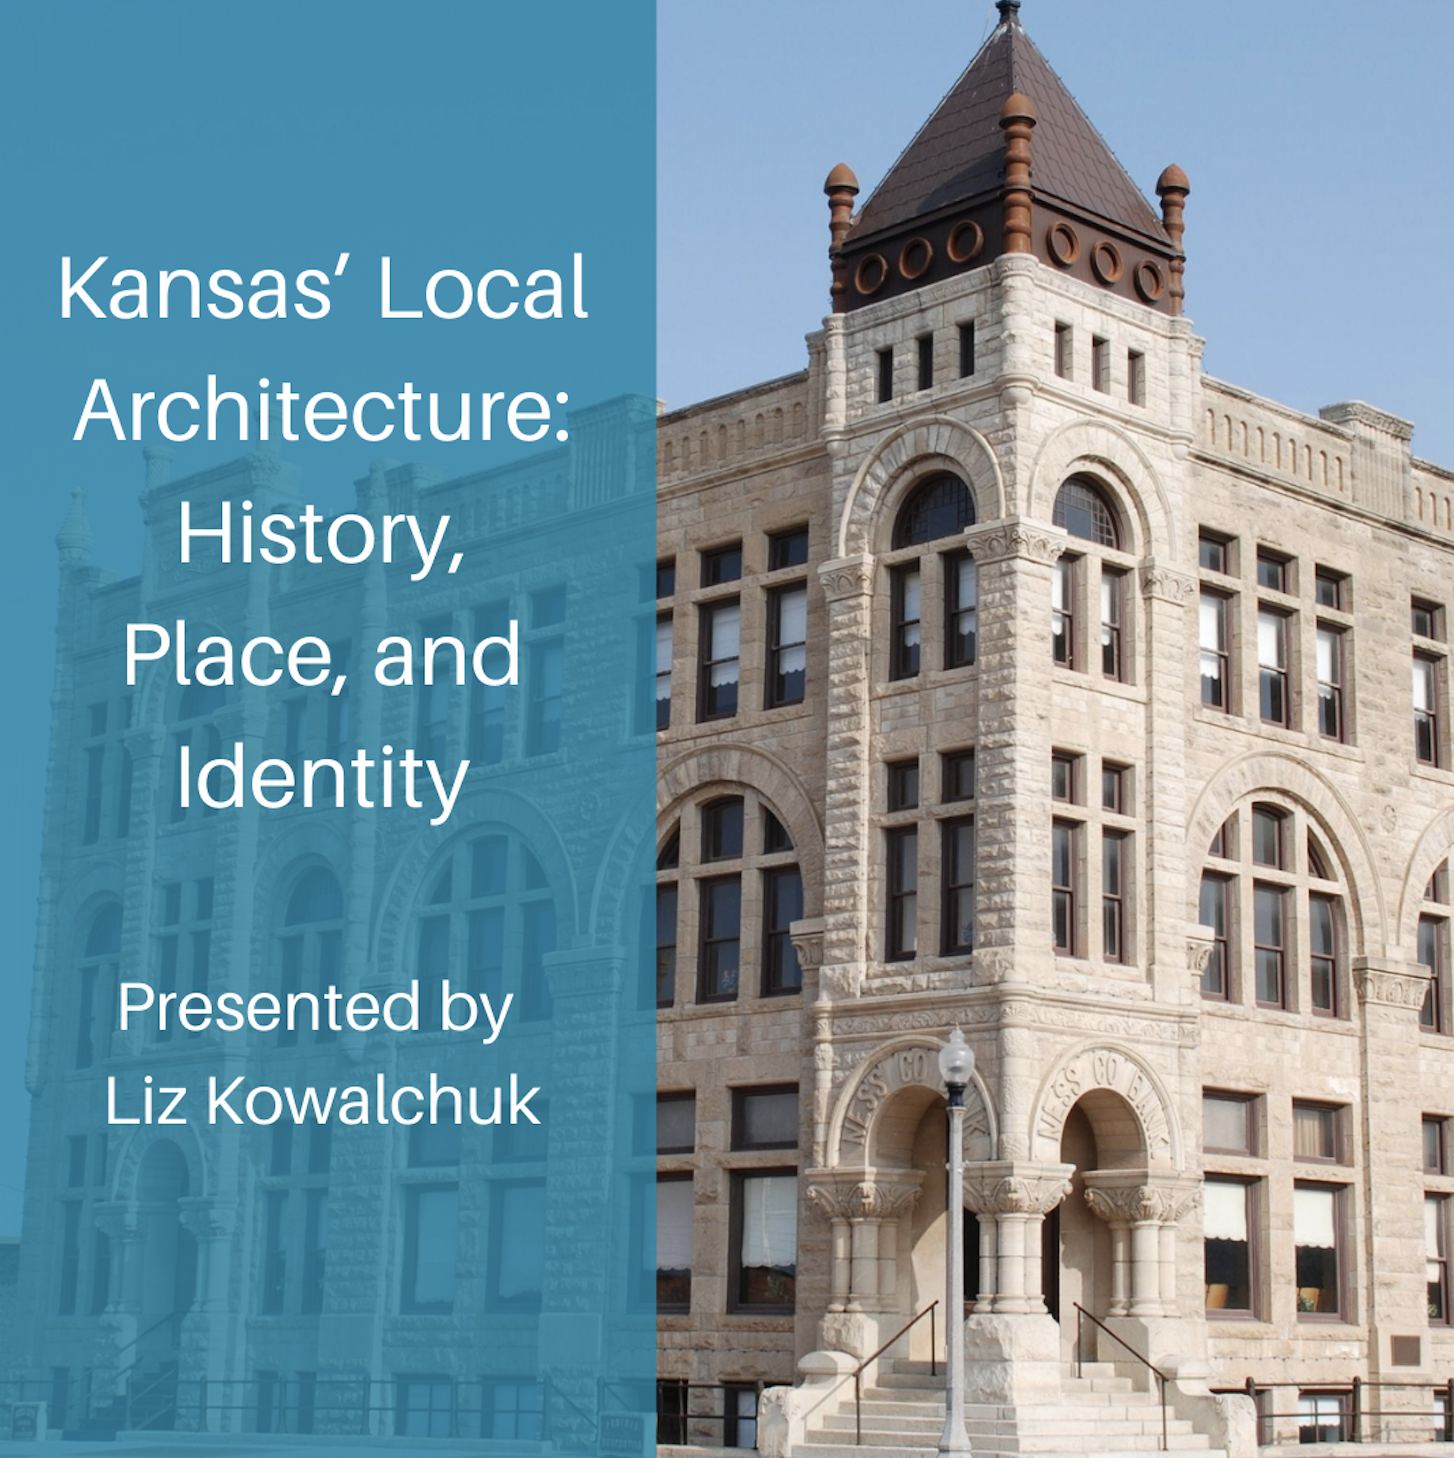 Online Program - Kansas' Local Architecture: History, Place, and Identity